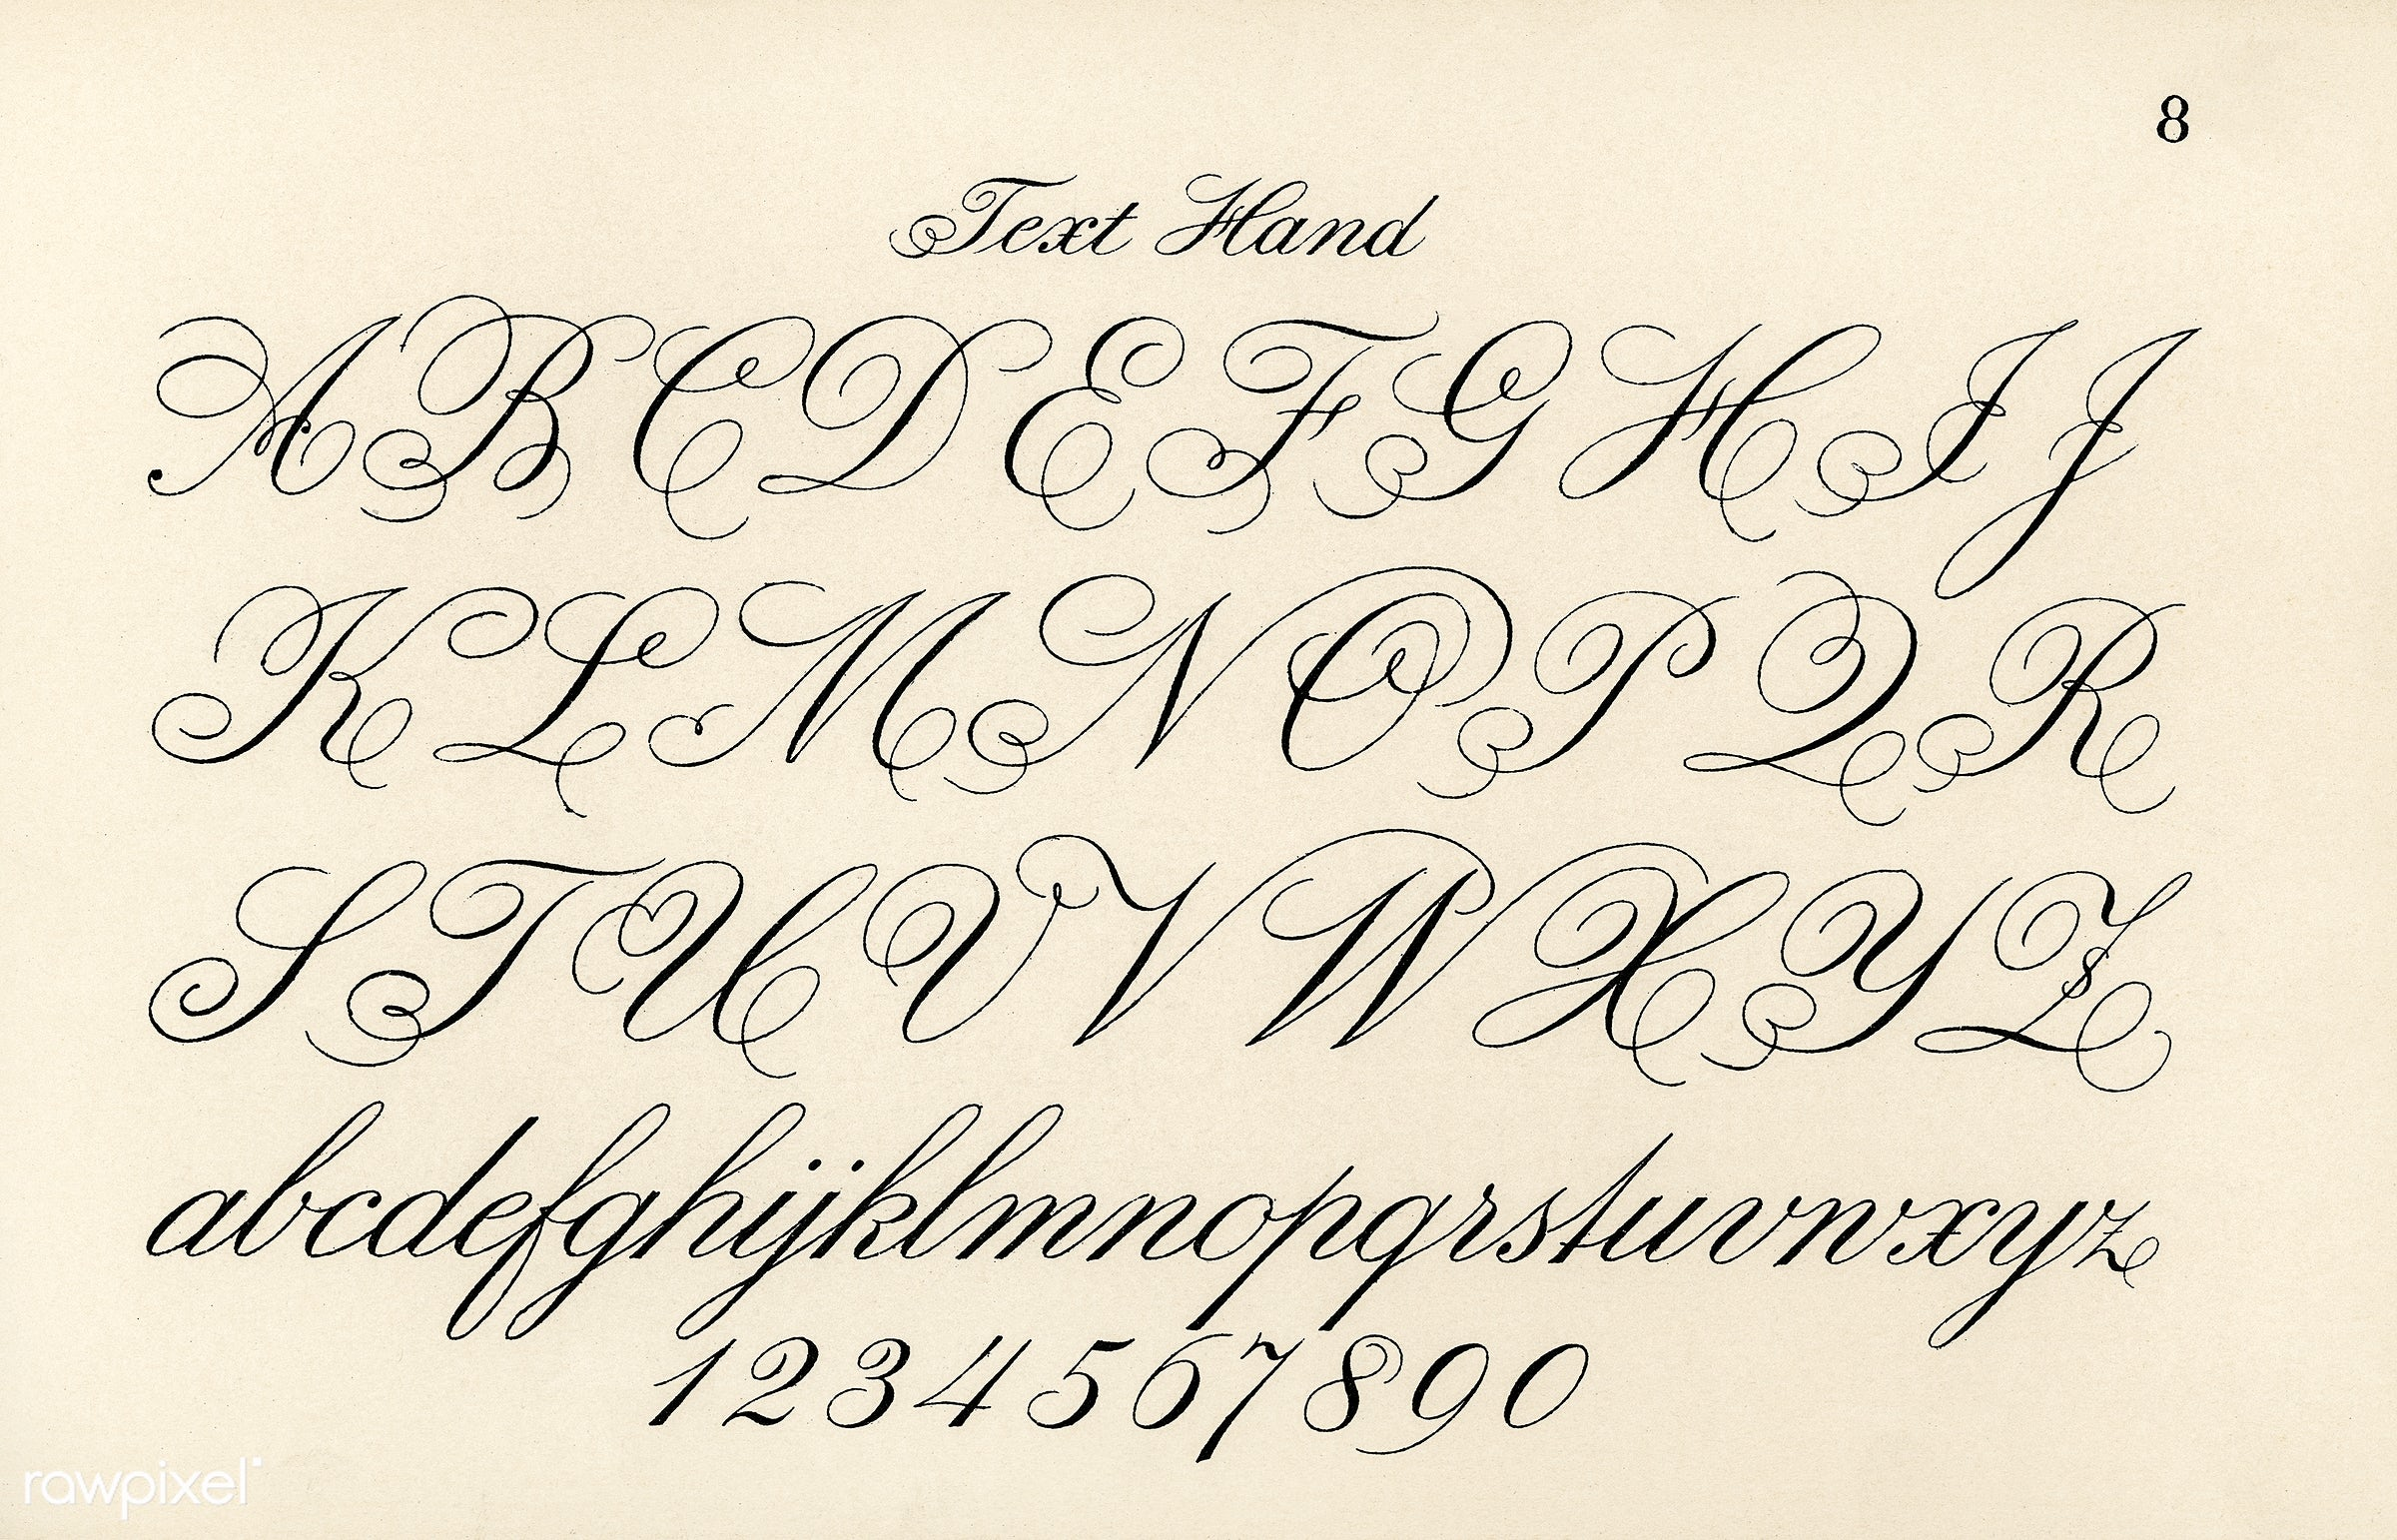 Cursive Fonts From Draughtsmans Alphabets By Hermann Esser 1845 1908 Digitally Enhanced Our Own 5th Edition Of The Publication